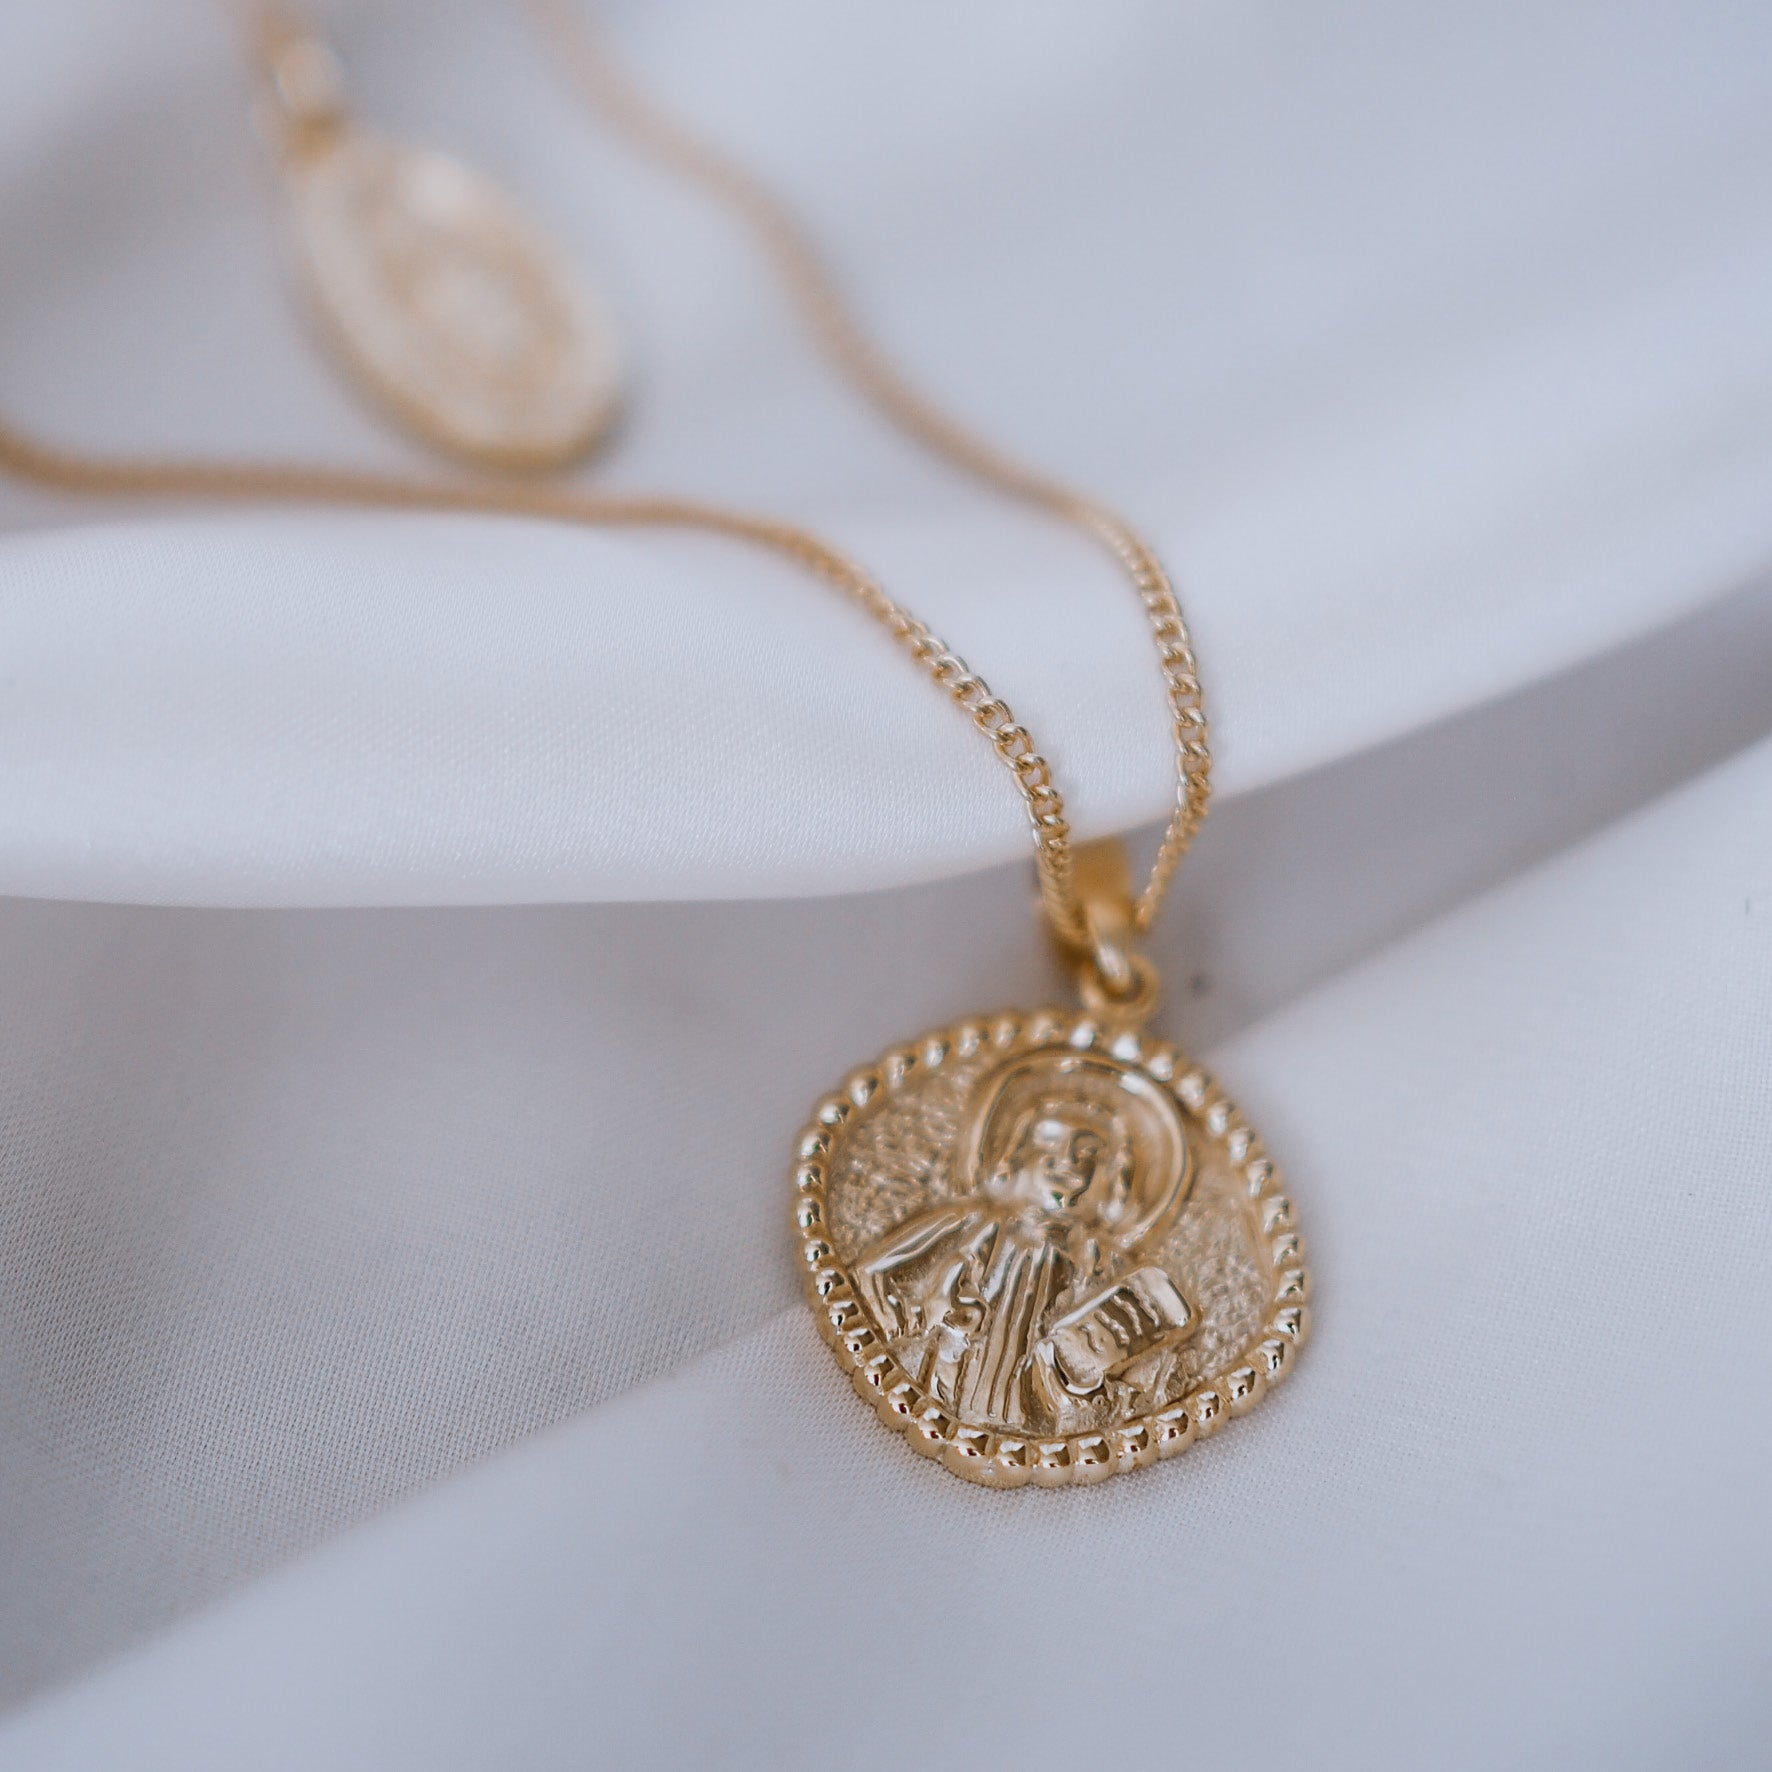 SOLID GOLD - St John - Patron Saint of Love & Friendships